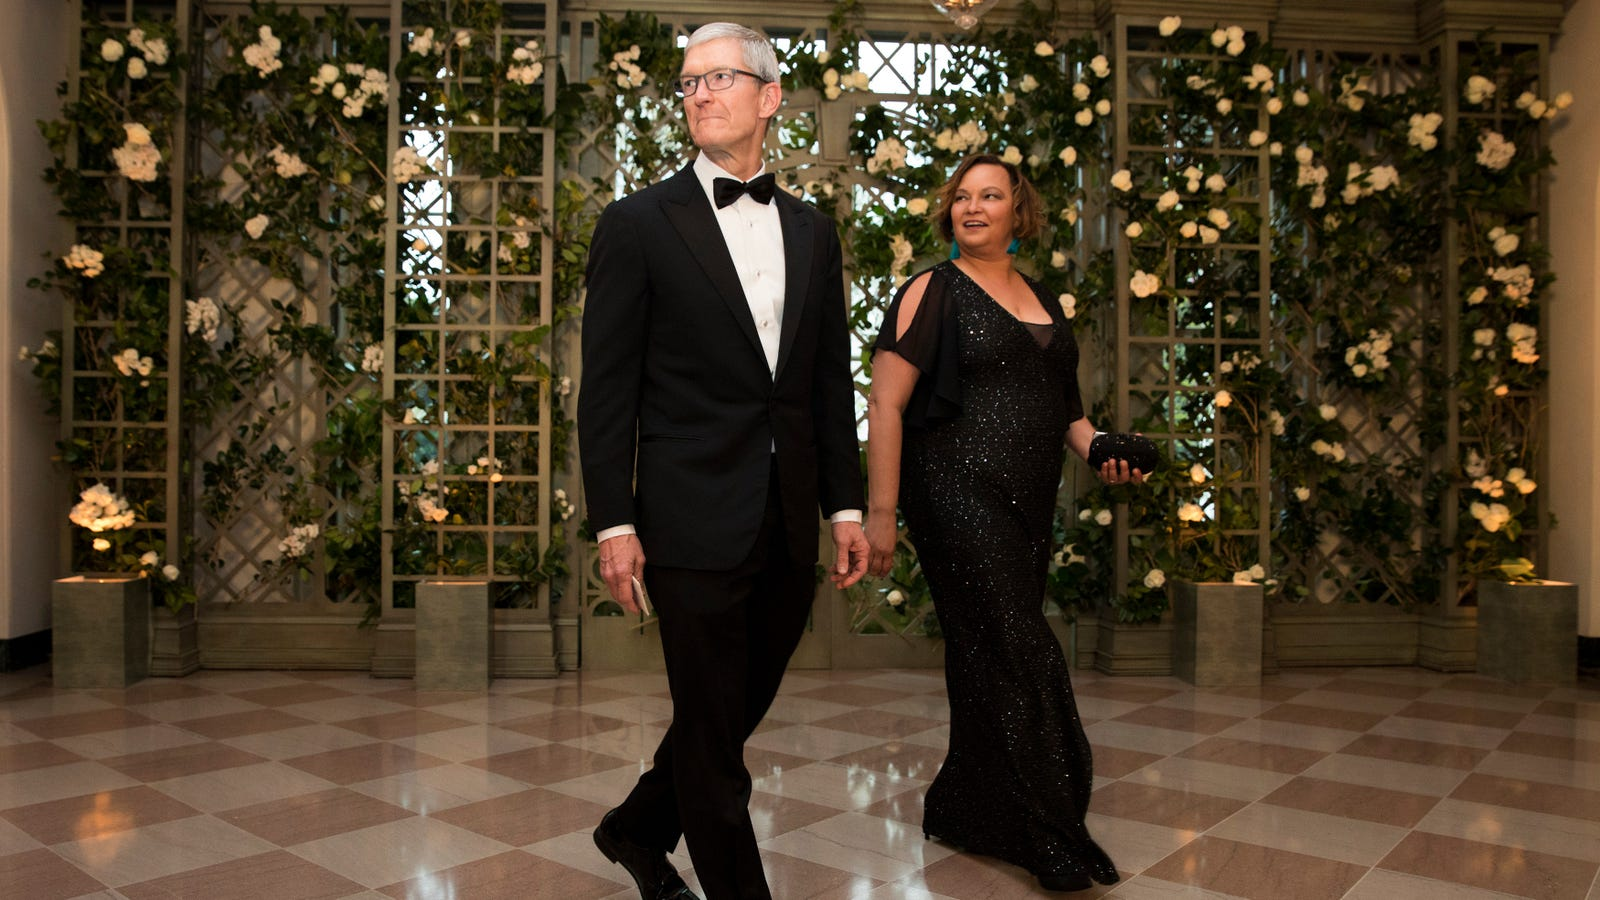 Behold Tim Cook's Obvious Discomfort Attending Trump's White House State Dinner